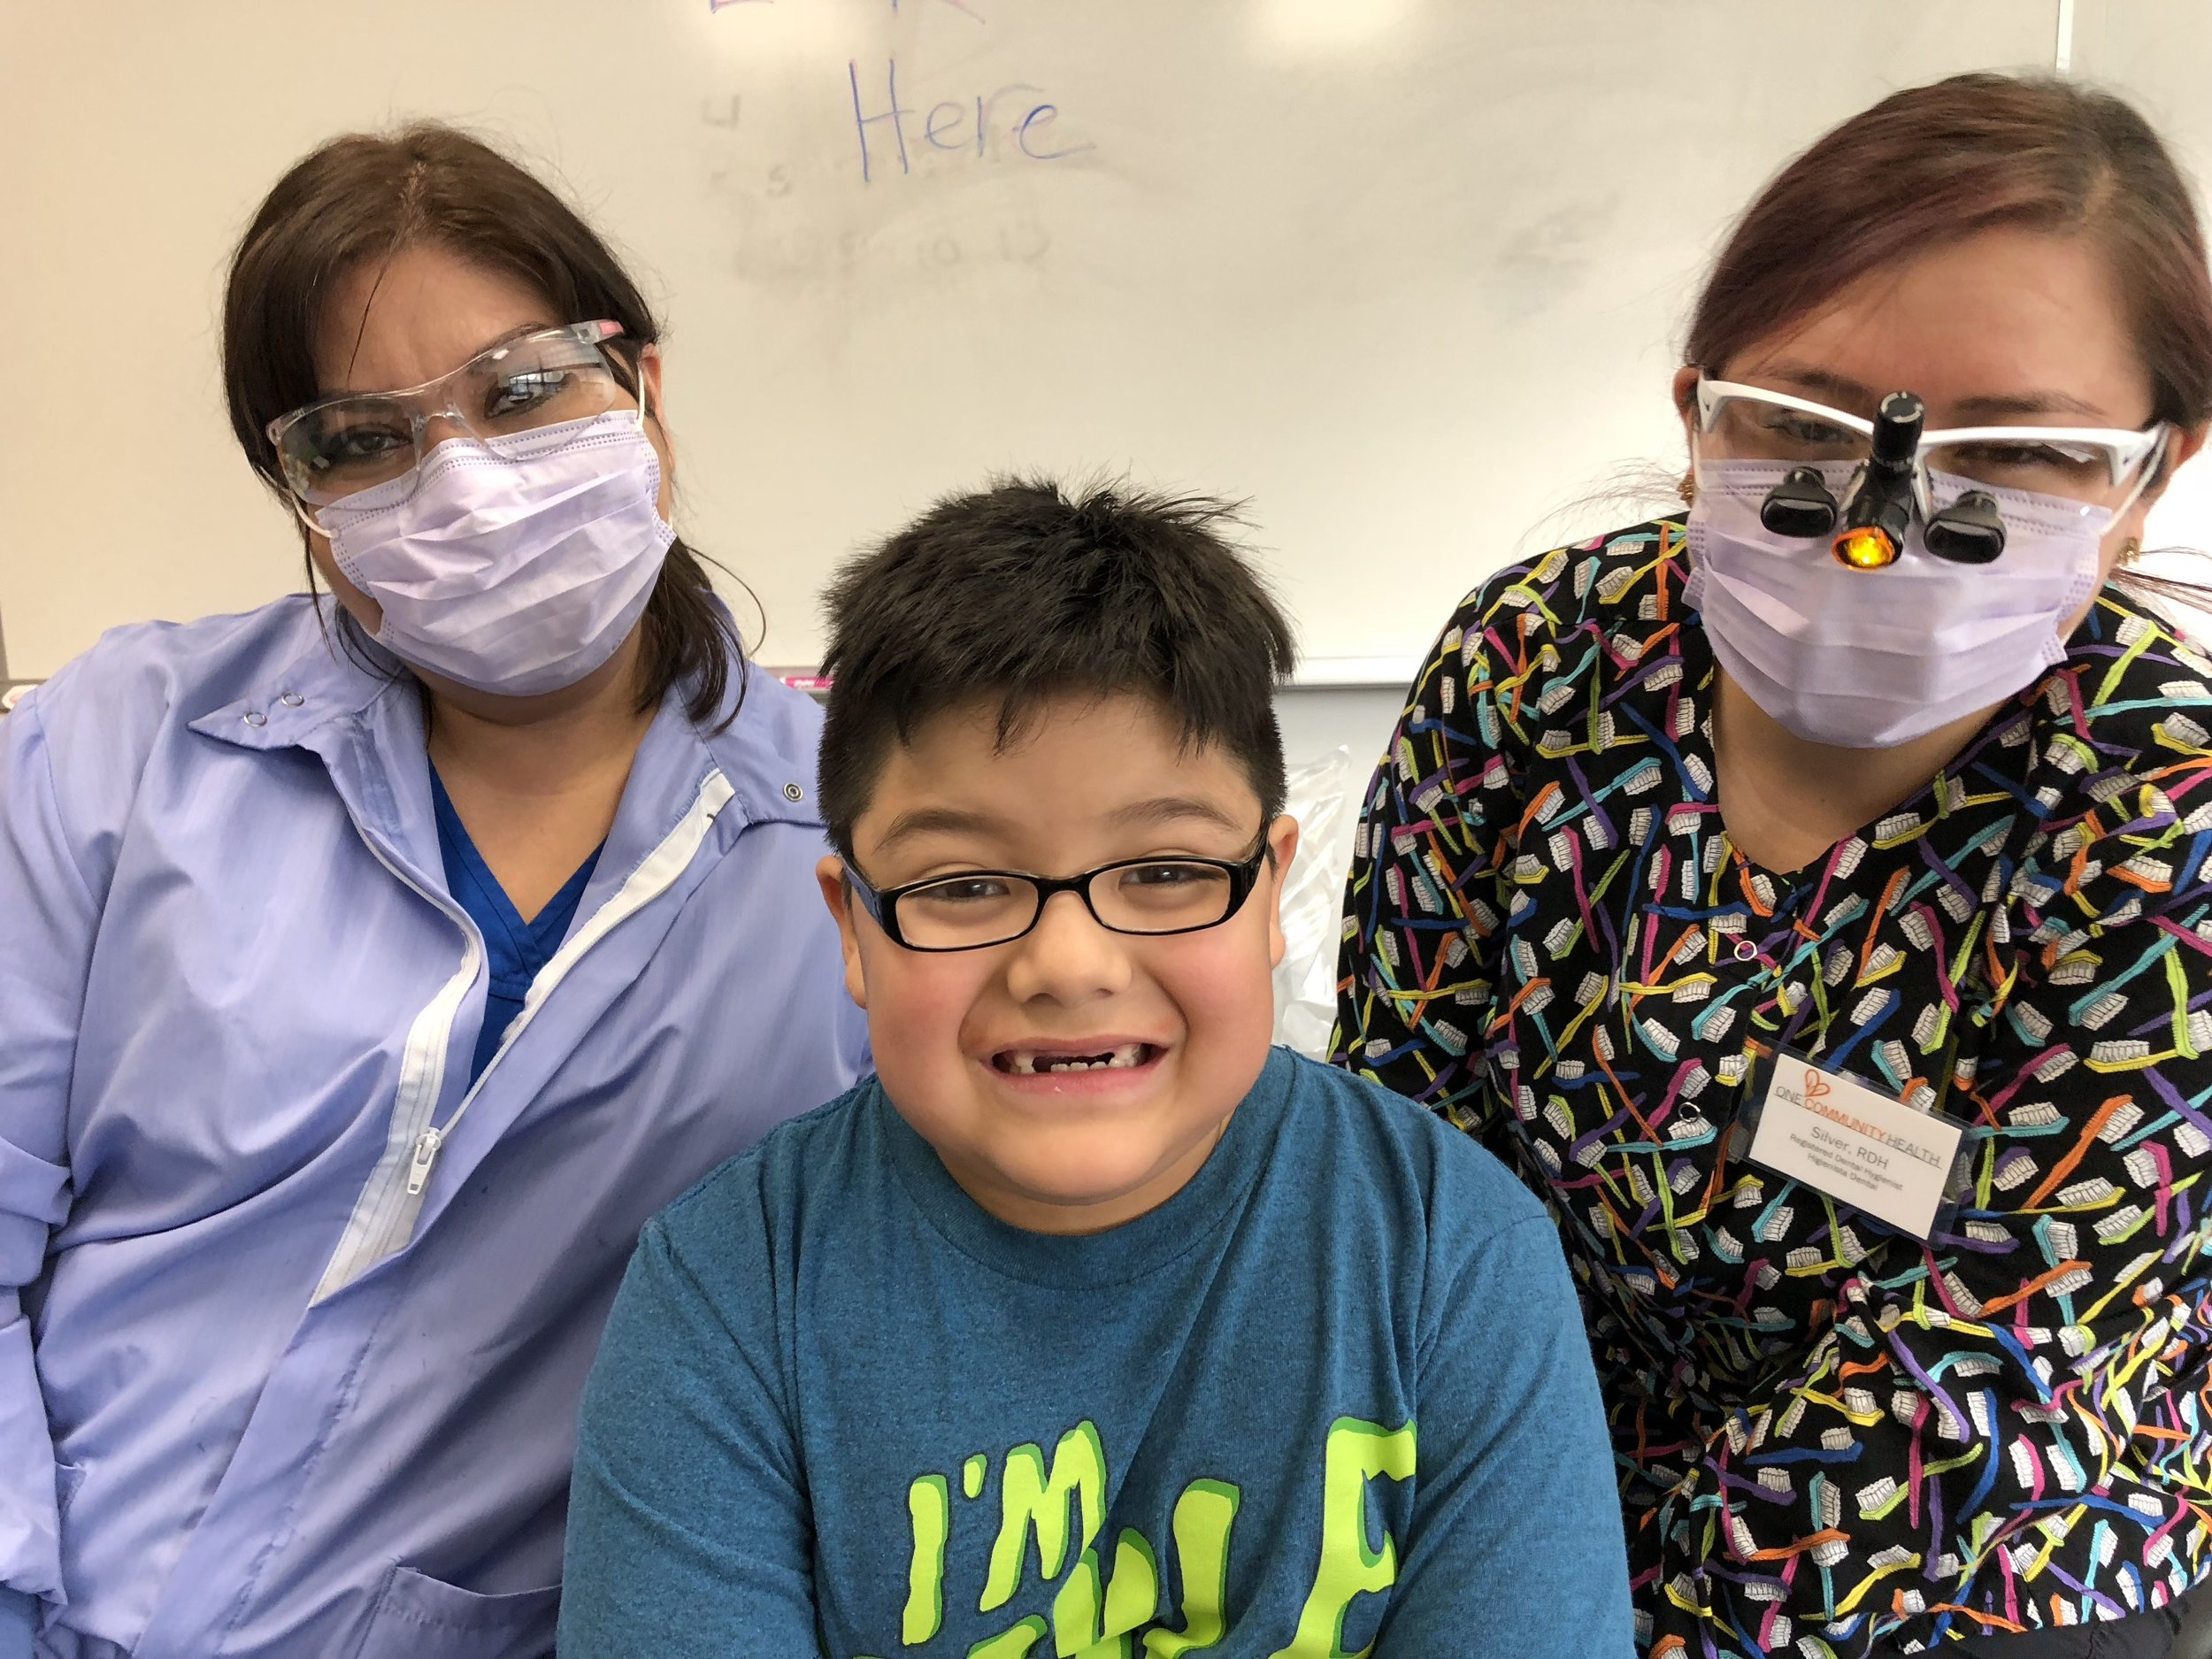 Mid-Valley Second Grader Nico Ochoa is about to receive free sealants, applied by One Community Health's Dental Assistant Cynthia Valdovinos (left) and Dental Hygienist Sylvianna Marquez (right).